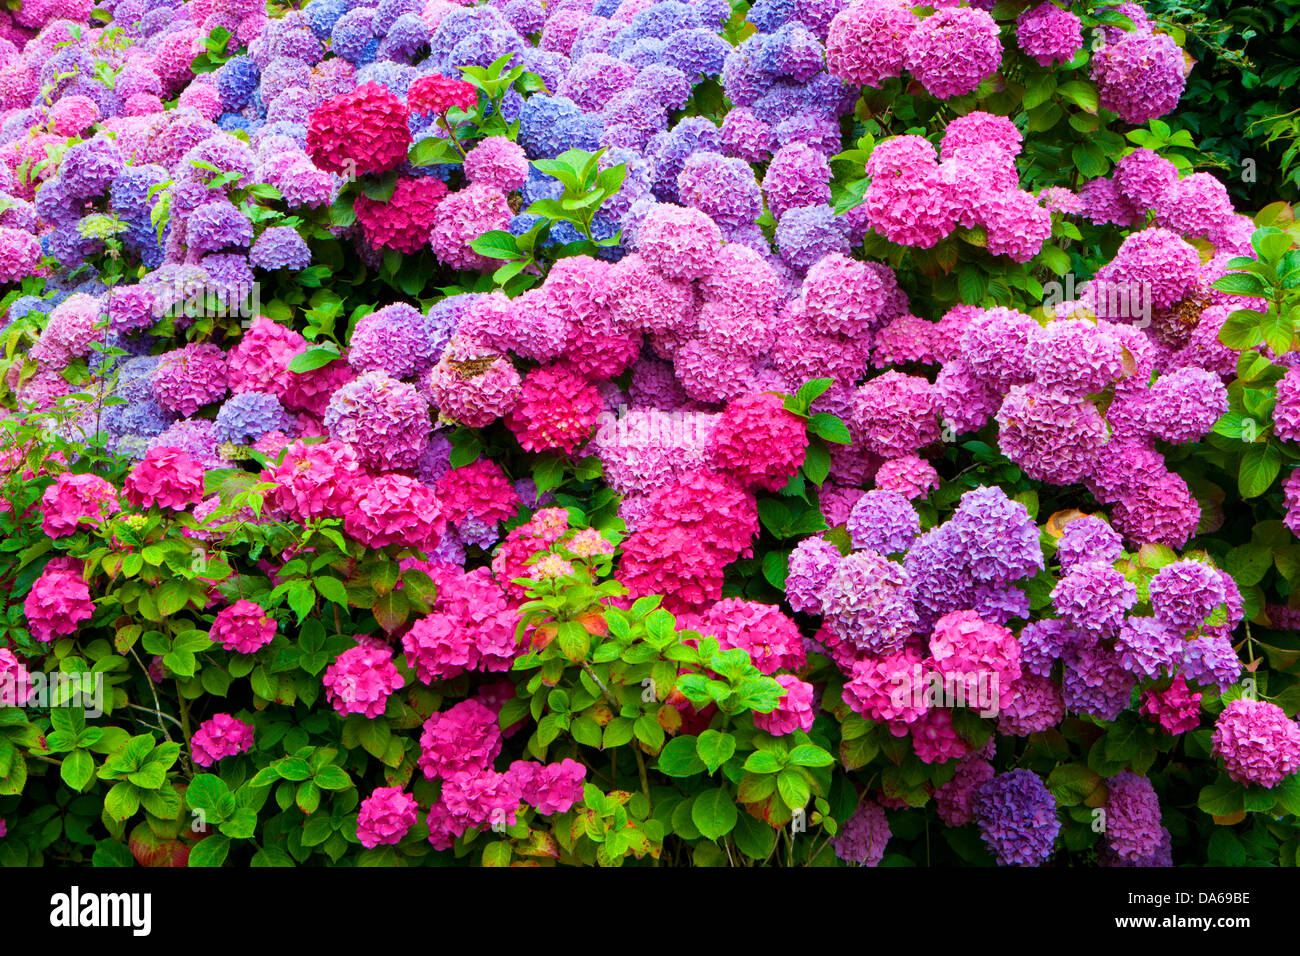 Abbaye de Beauport, Paimpol, France, Europe, Brittany, department Côtes d'Armor, flowers, hydrangeas - Stock Image